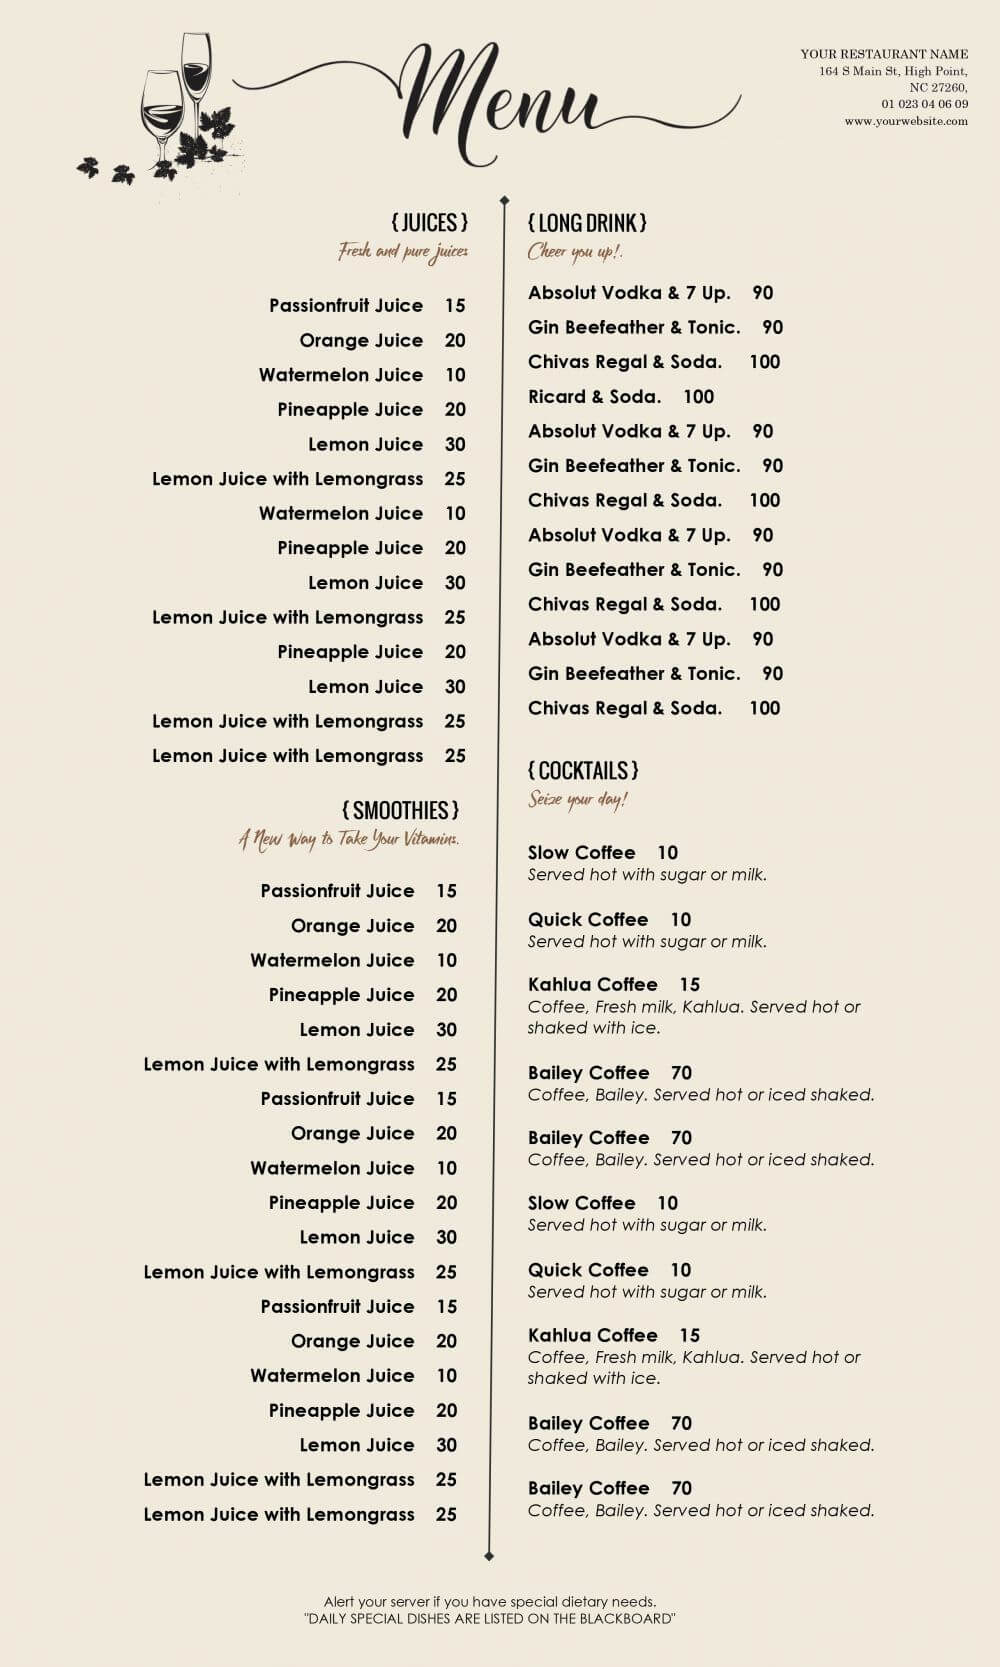 04D50 Restaurant Menu Templates Word | Wiring Resources Intended For Free Cafe Menu Templates For Word